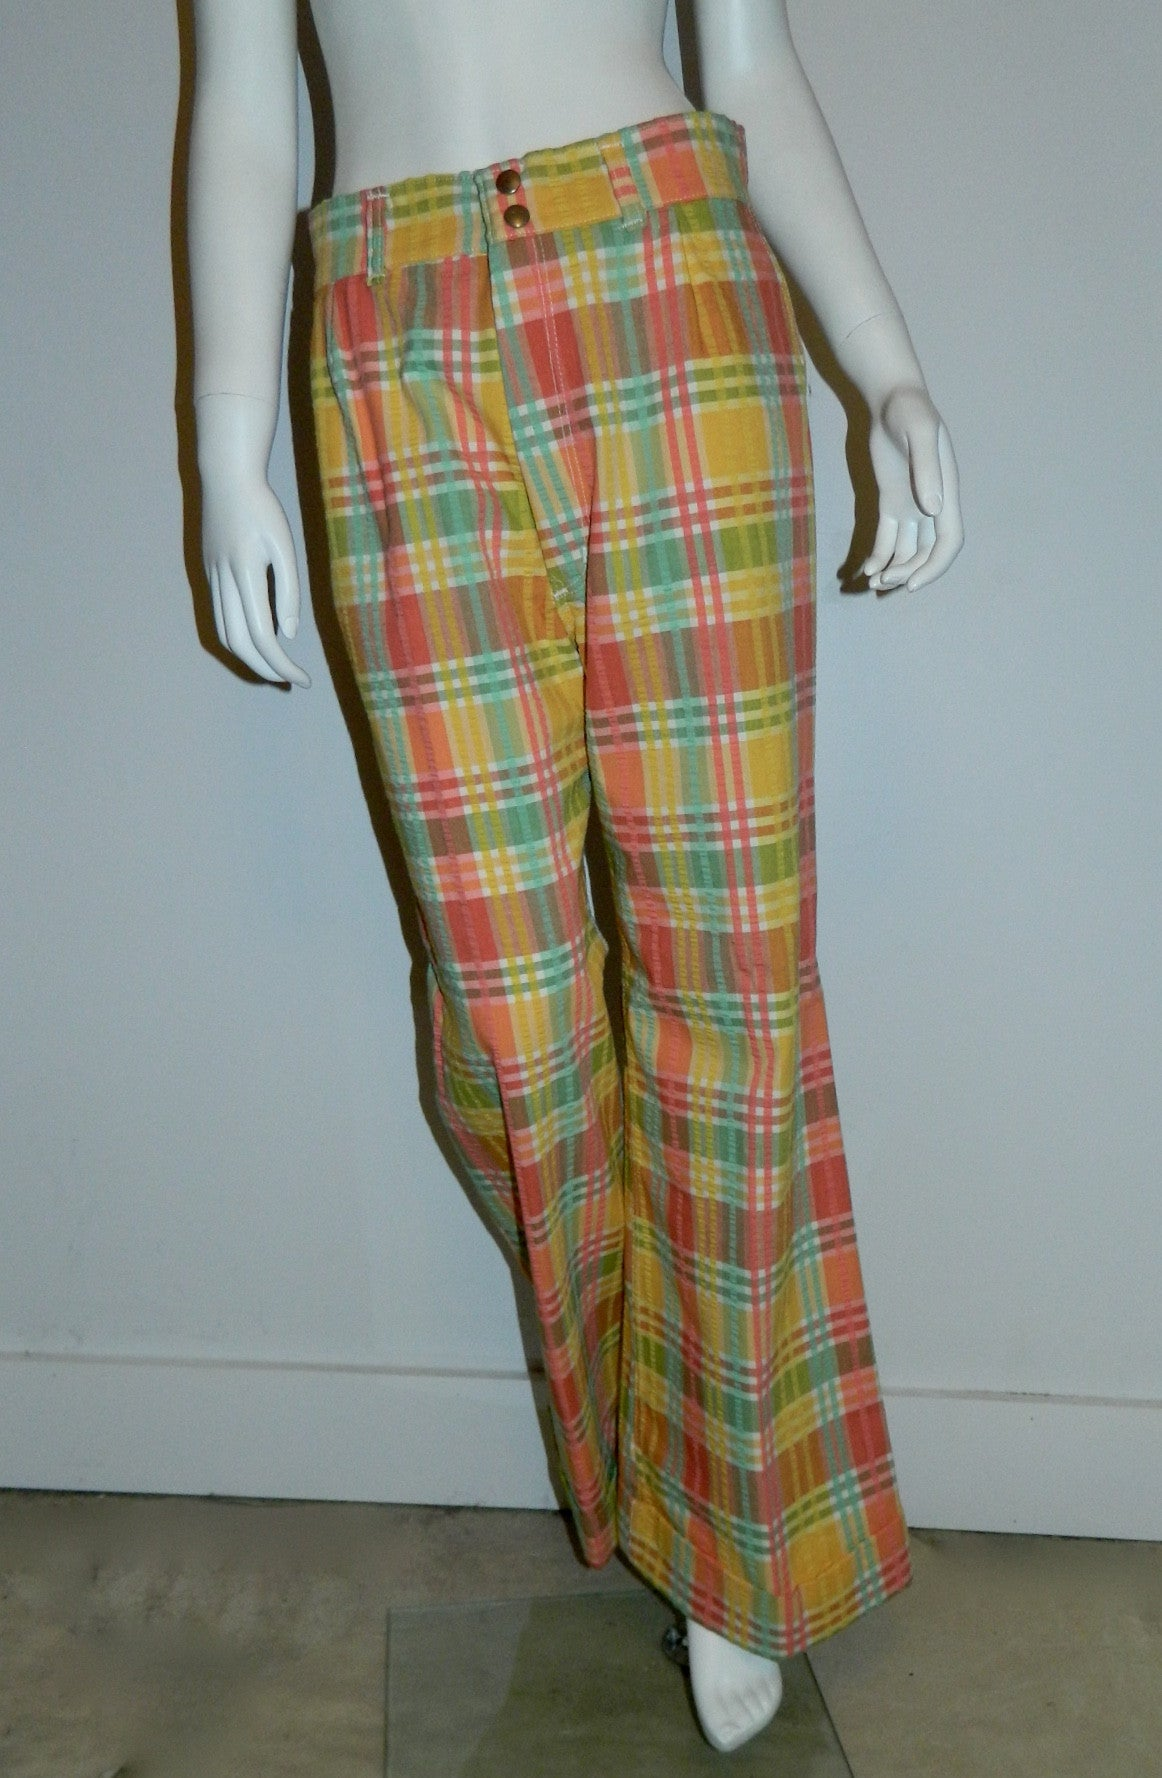 vintage plaid seersucker pants / 1970s pastel Wrangler jeans / wide leg cuffed trousers